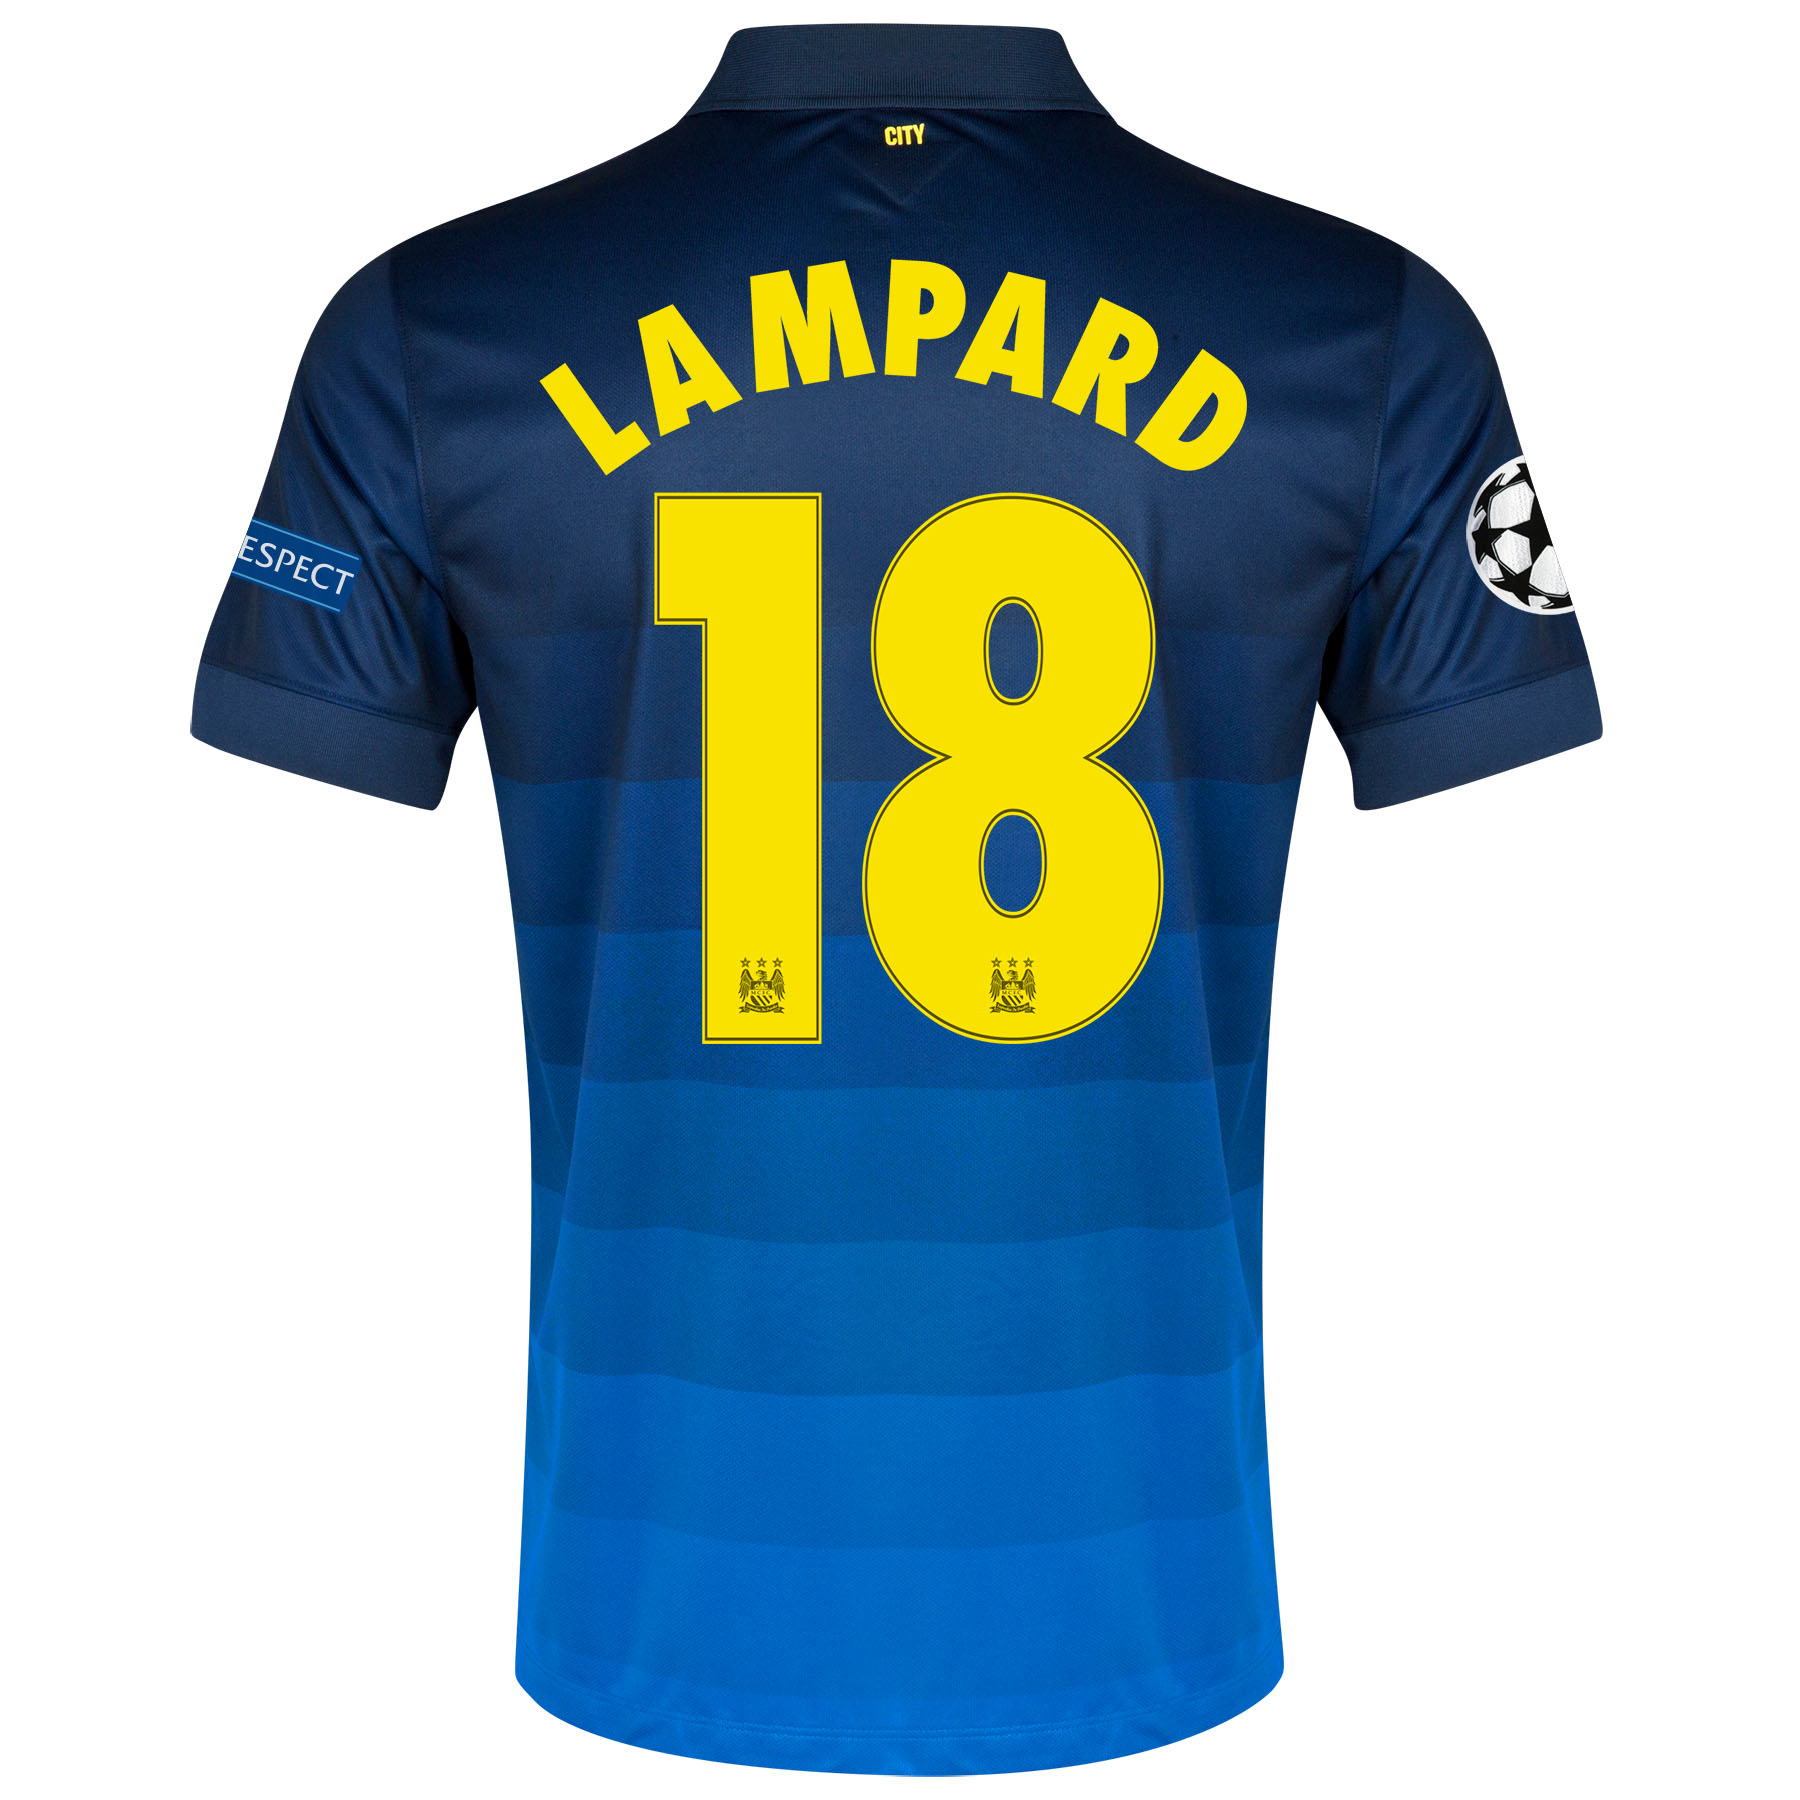 Manchester City UEFA Champions League Away Shirt 2014/15 - Kids with Lampard 18 printing